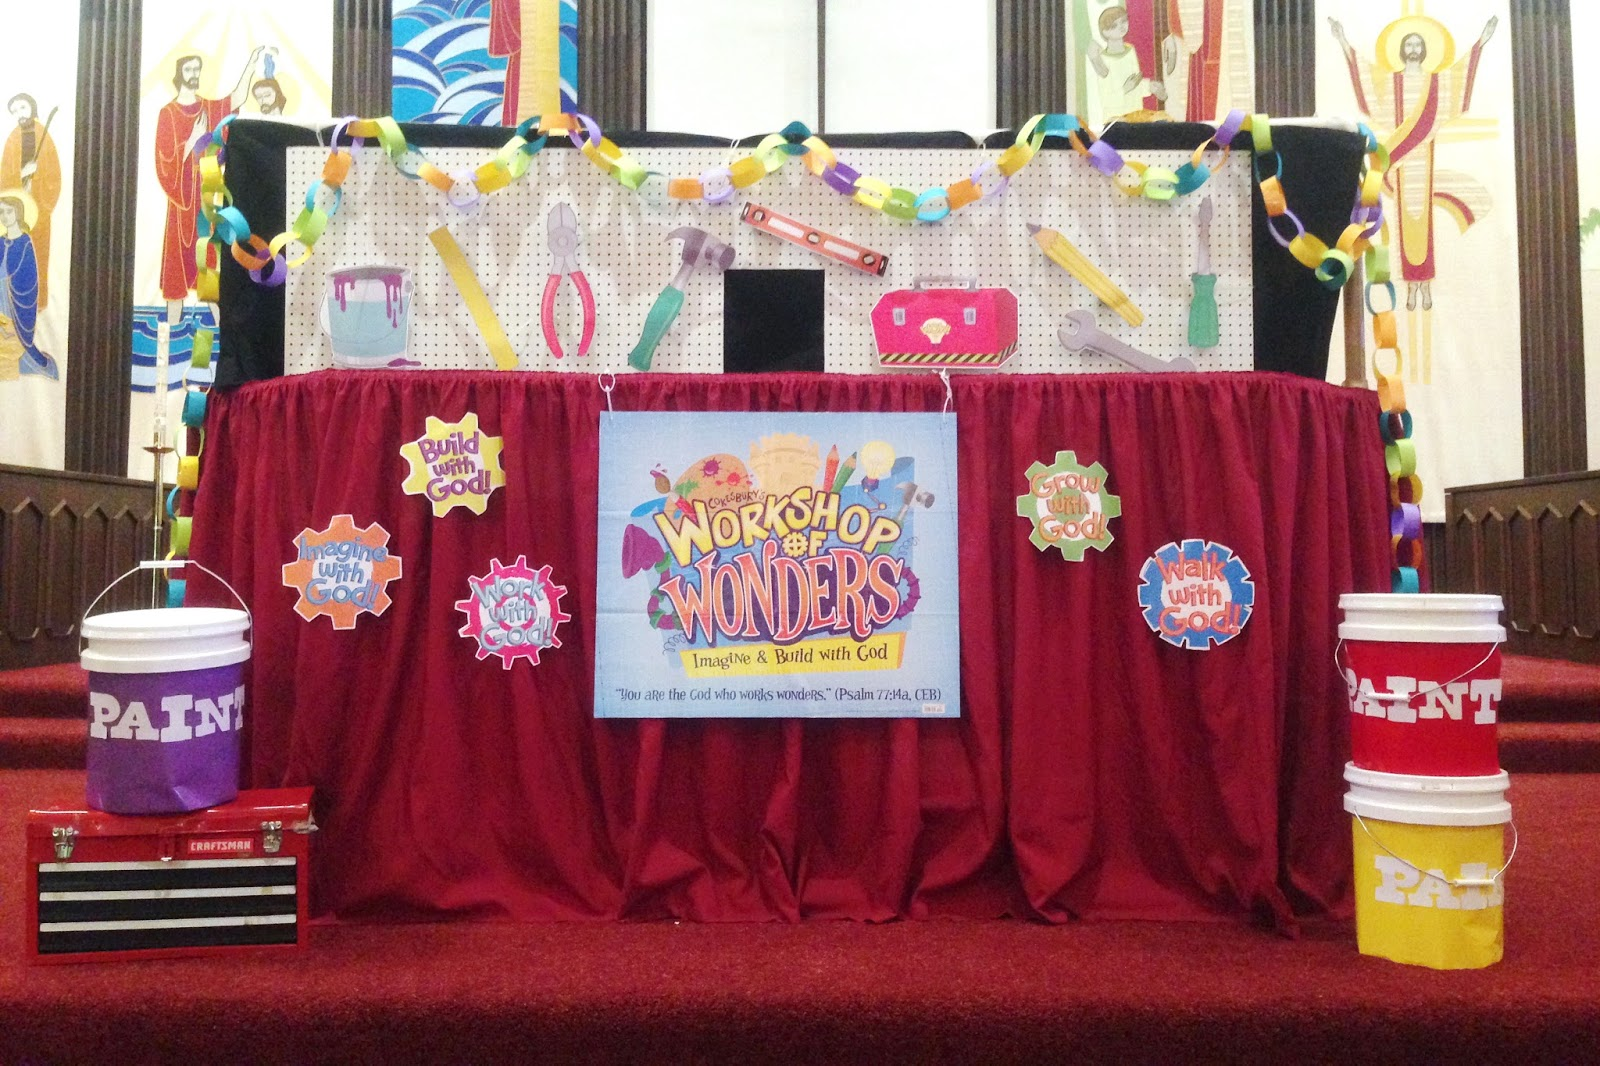 Dancing Commas :: Workshop of Wonders VBS :: Puppet stage with pegboard